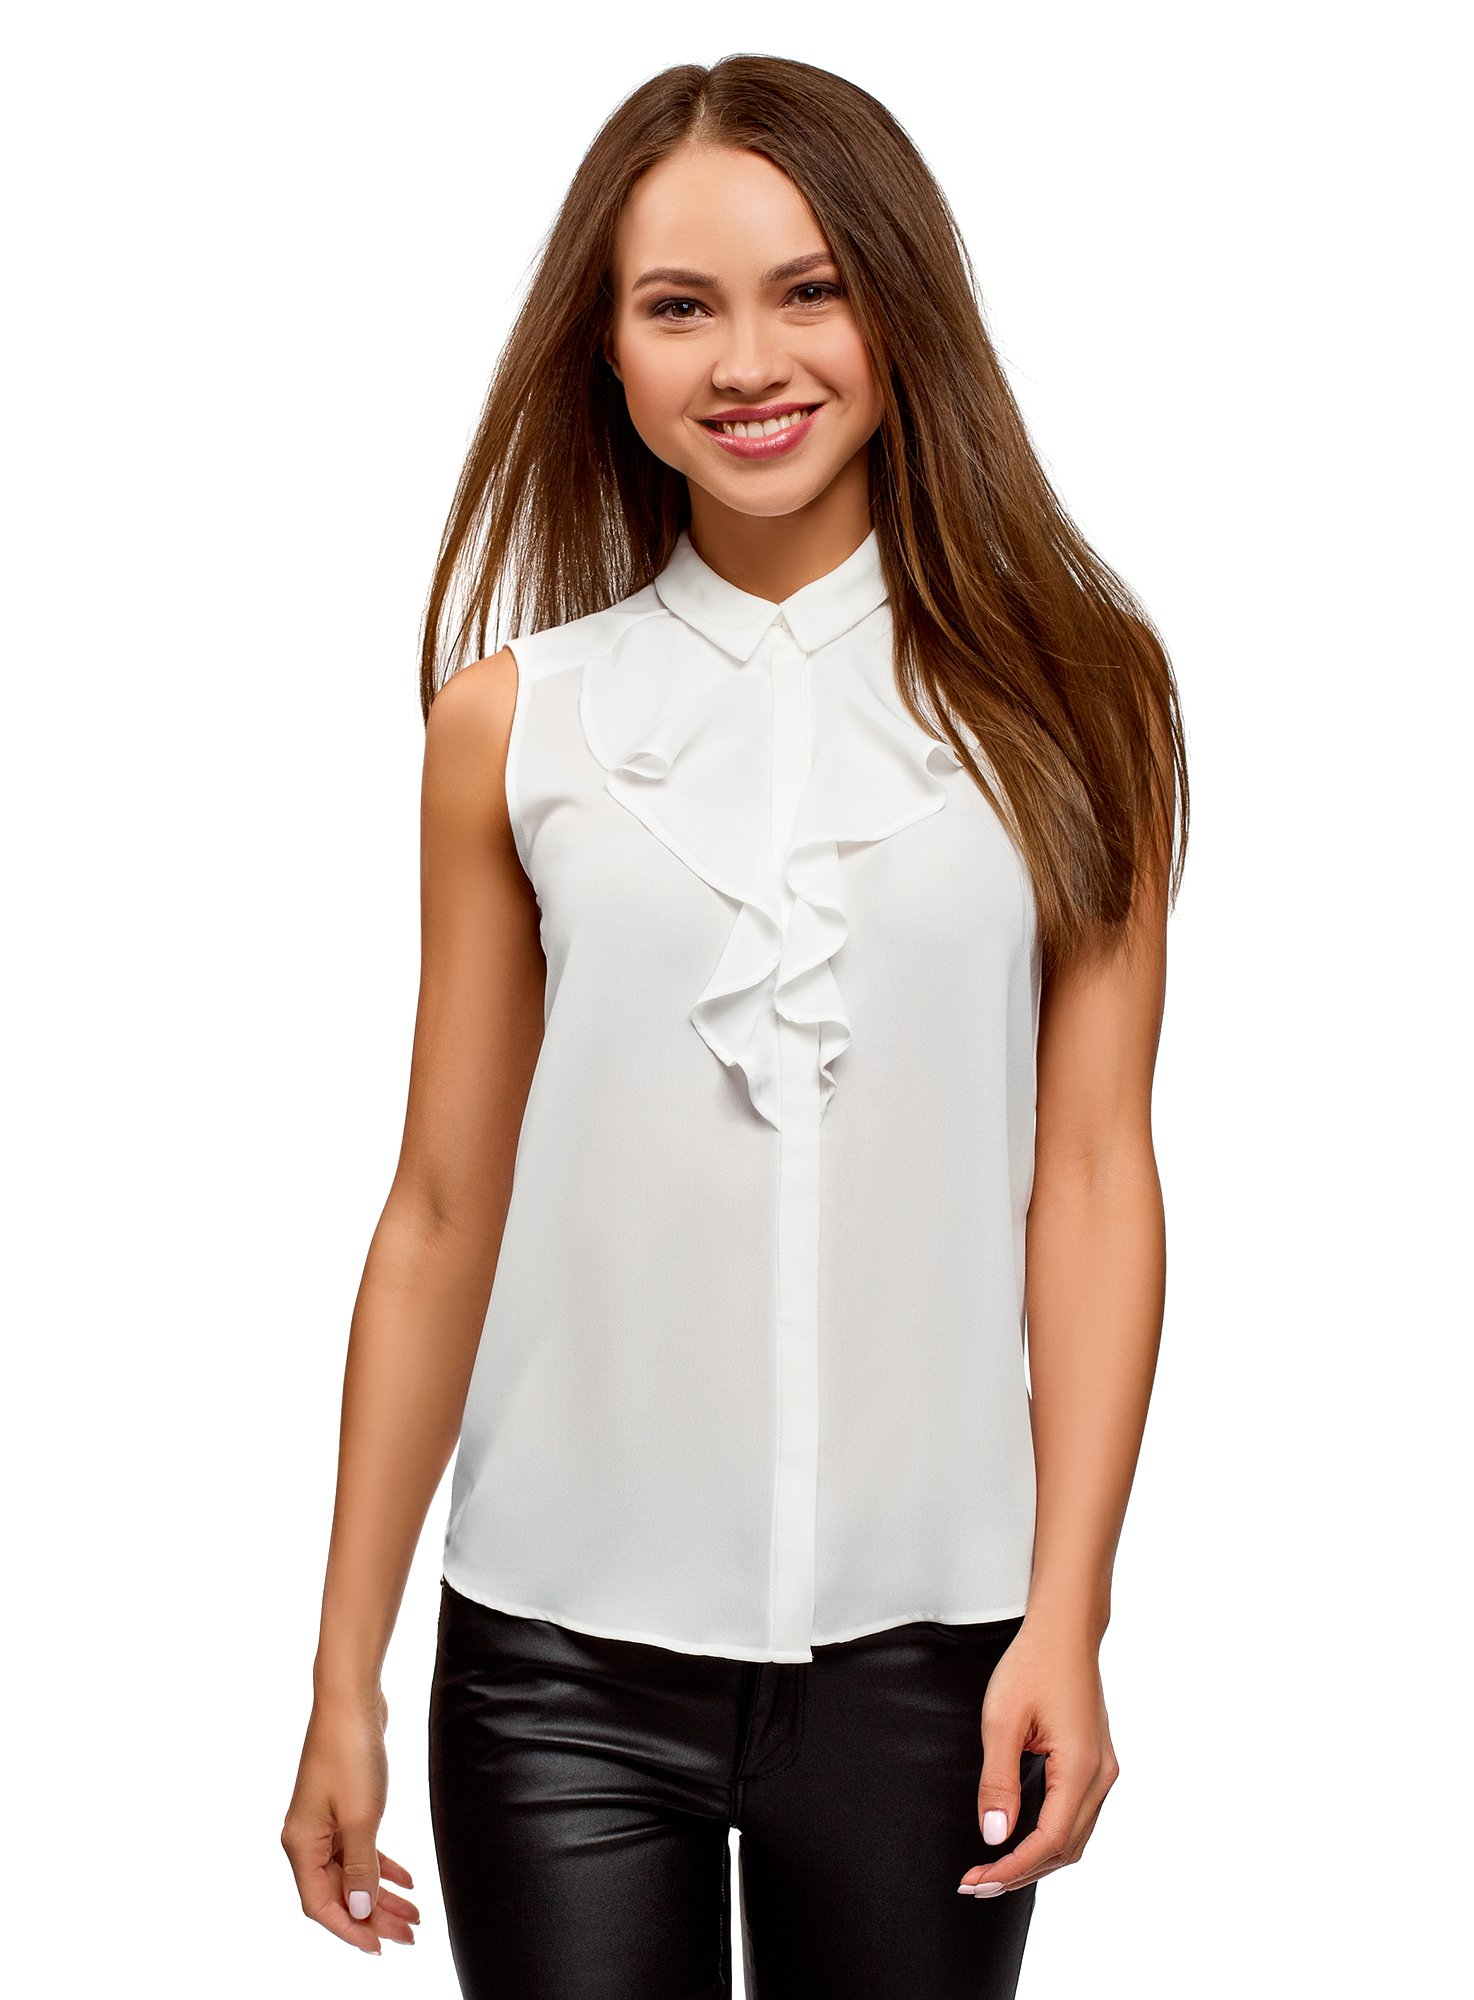 oodji Collection Women's Flounce Collar Top in Flowing Fabric, White, 6 by oodji